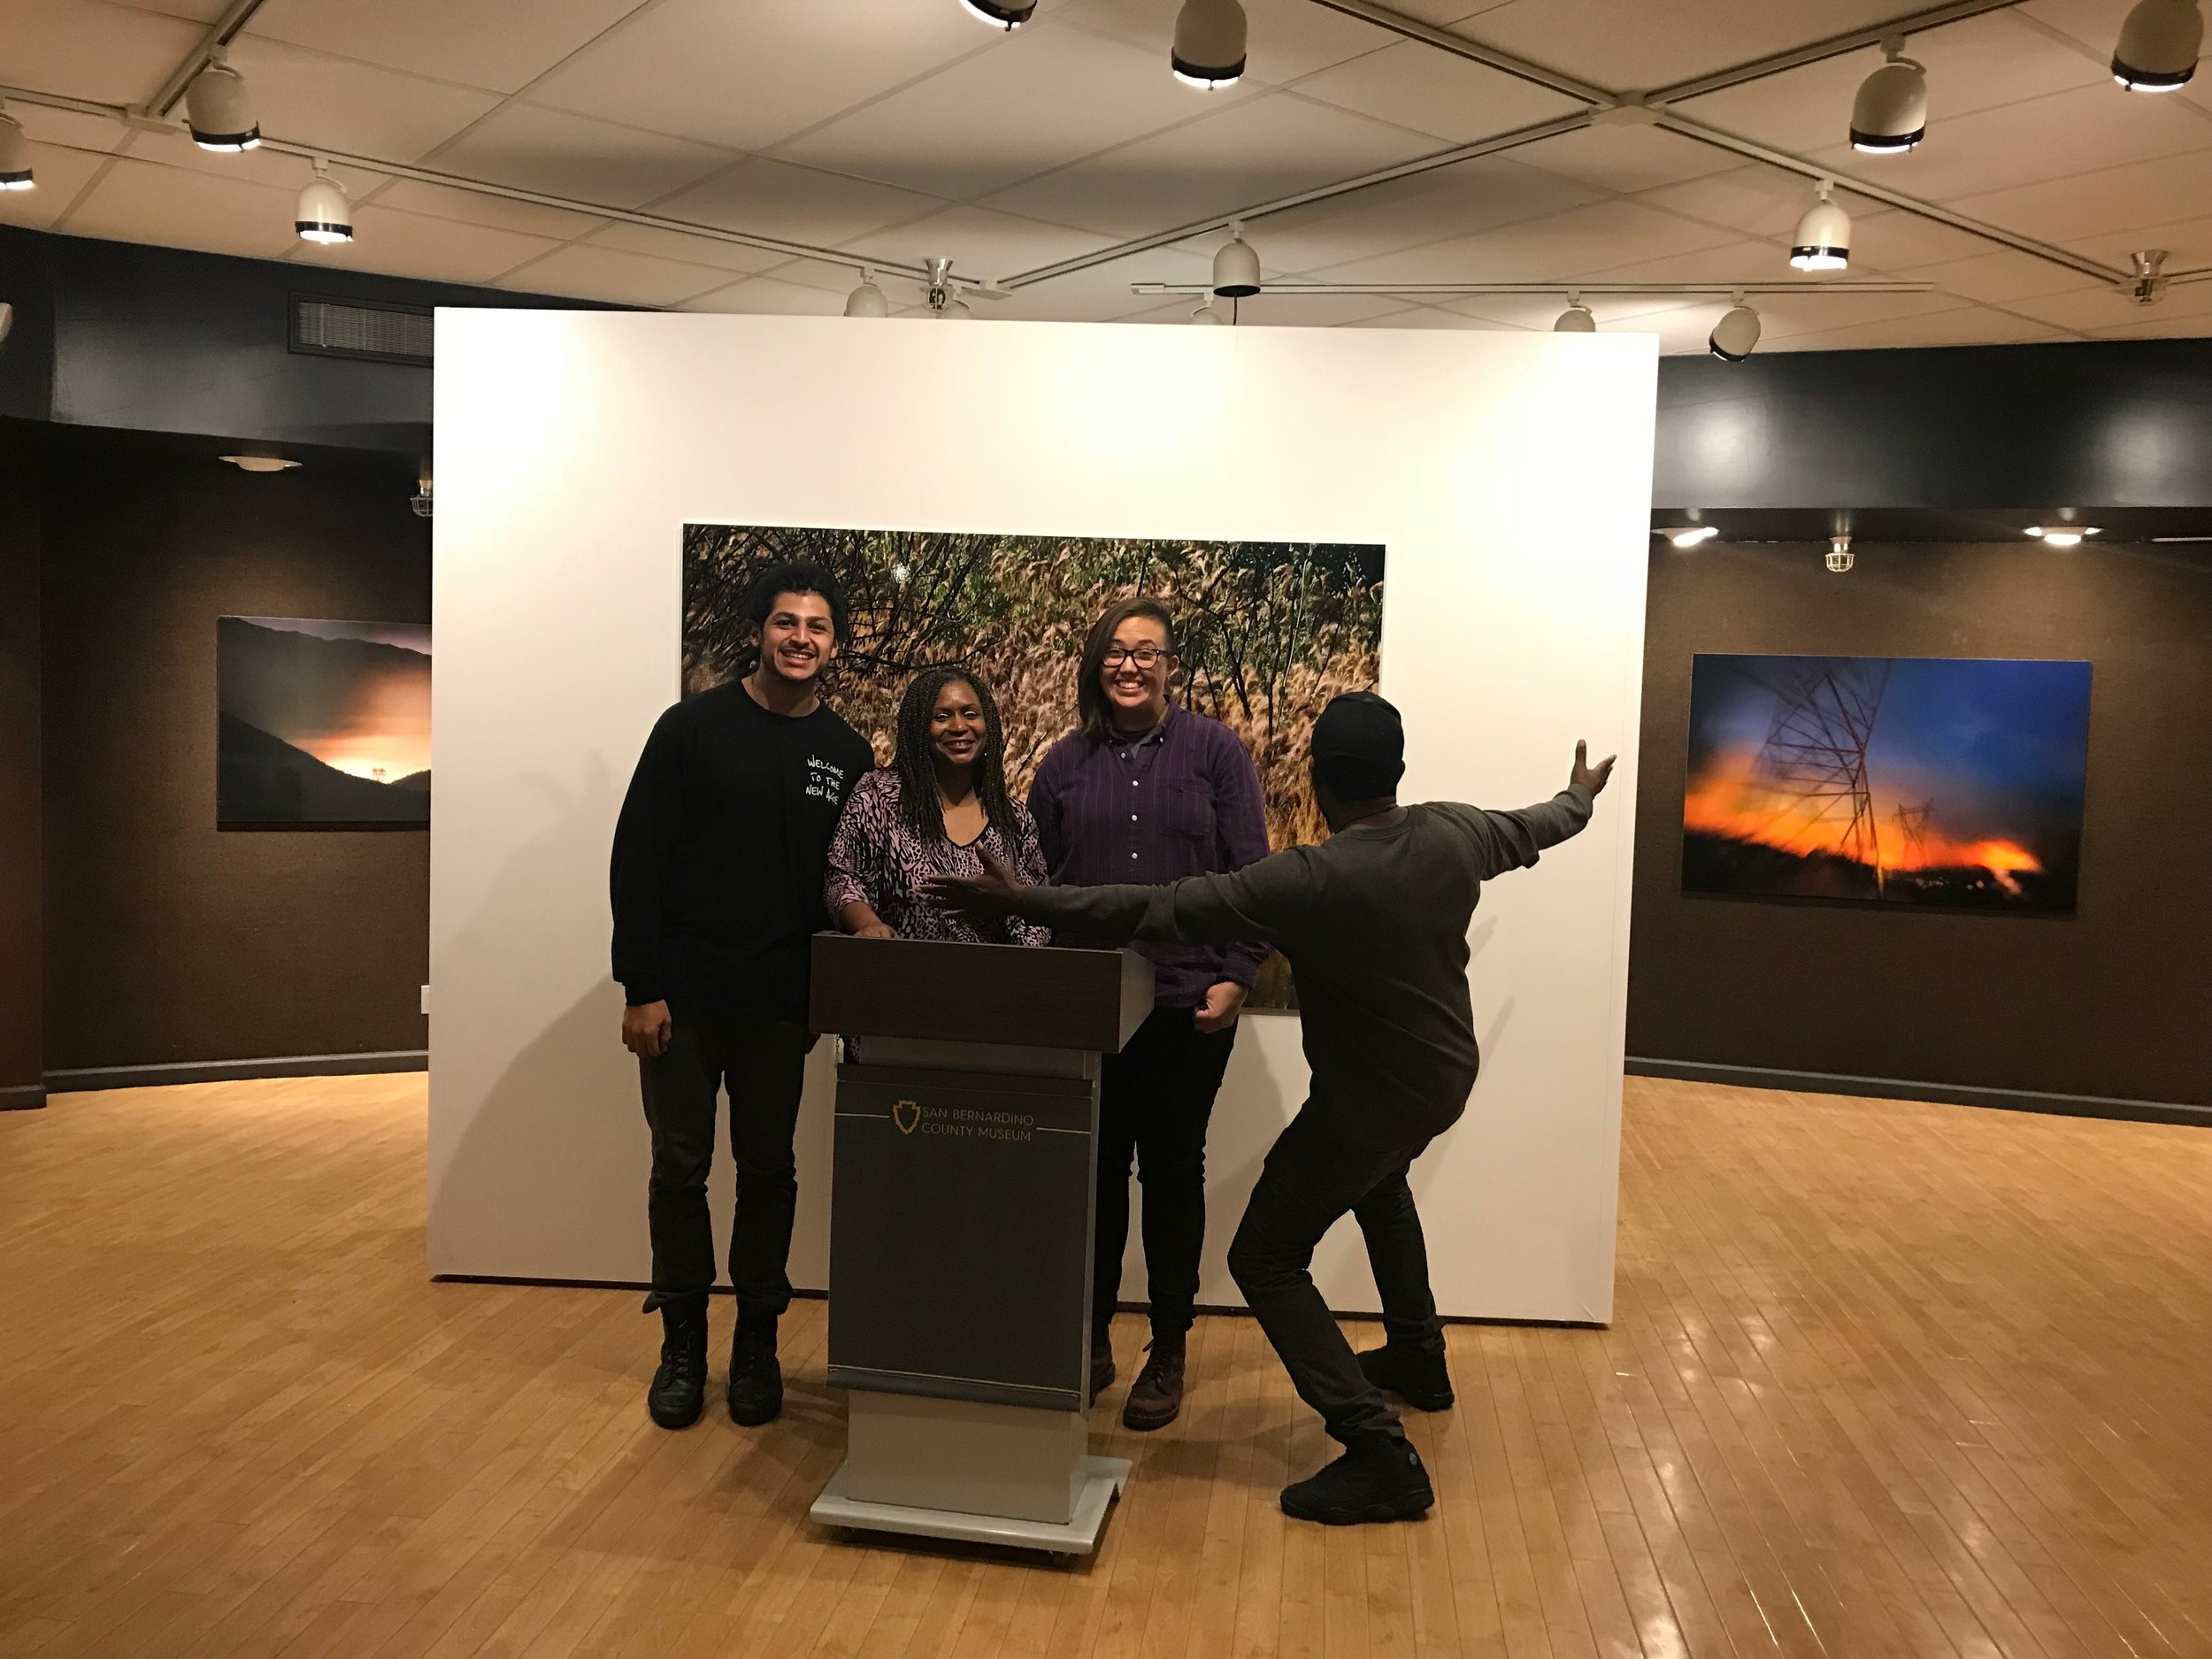 Life in the Cracks at the San Bernardino County Museum 3/10/18 with poets T.R.U.E, Kacee Kemiah, and Nato.